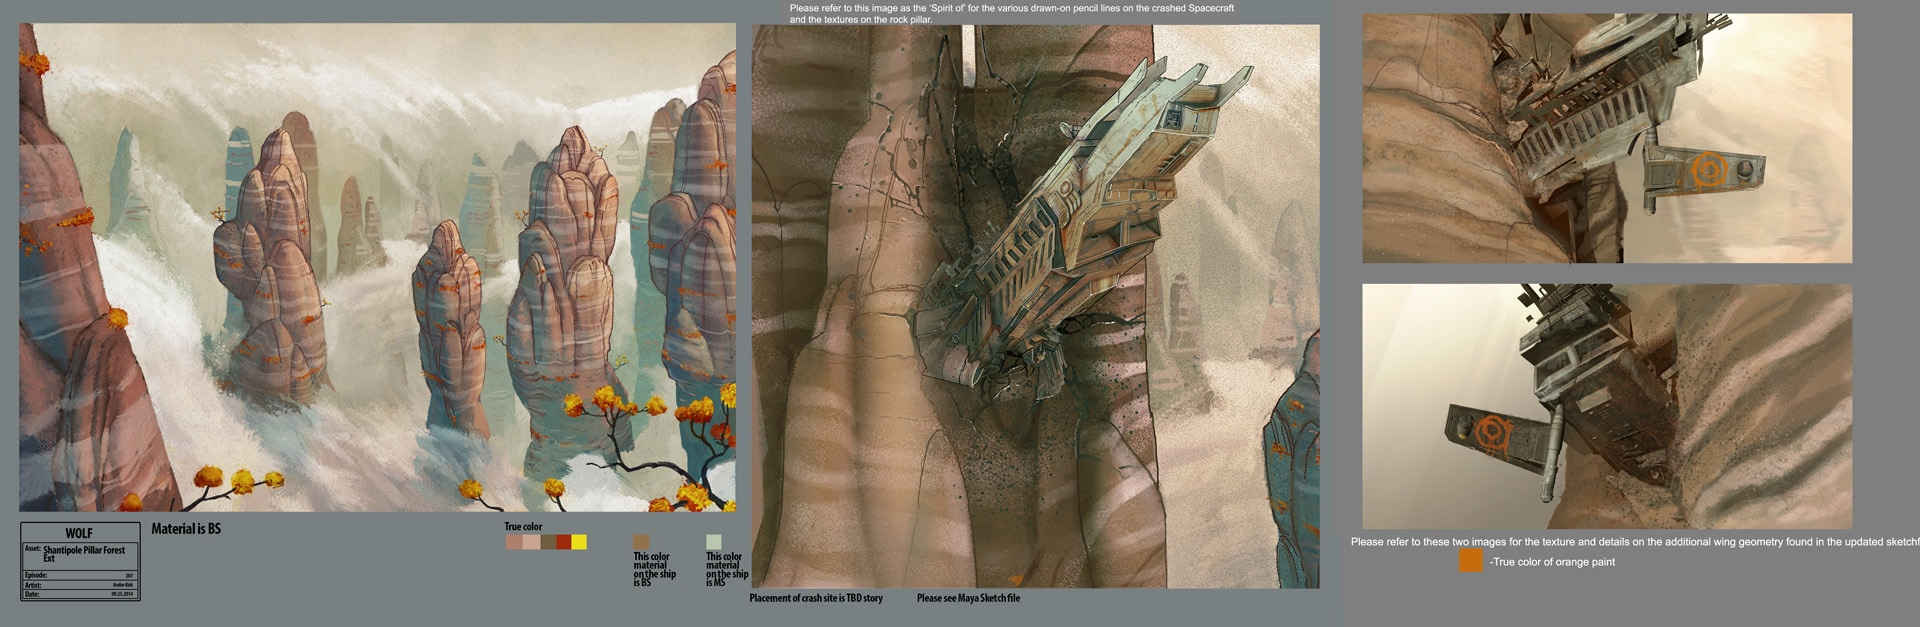 wings-of-the-master-concept-art_05_bf13bd35.jpeg?region=0%2C0%2C1920%2C627